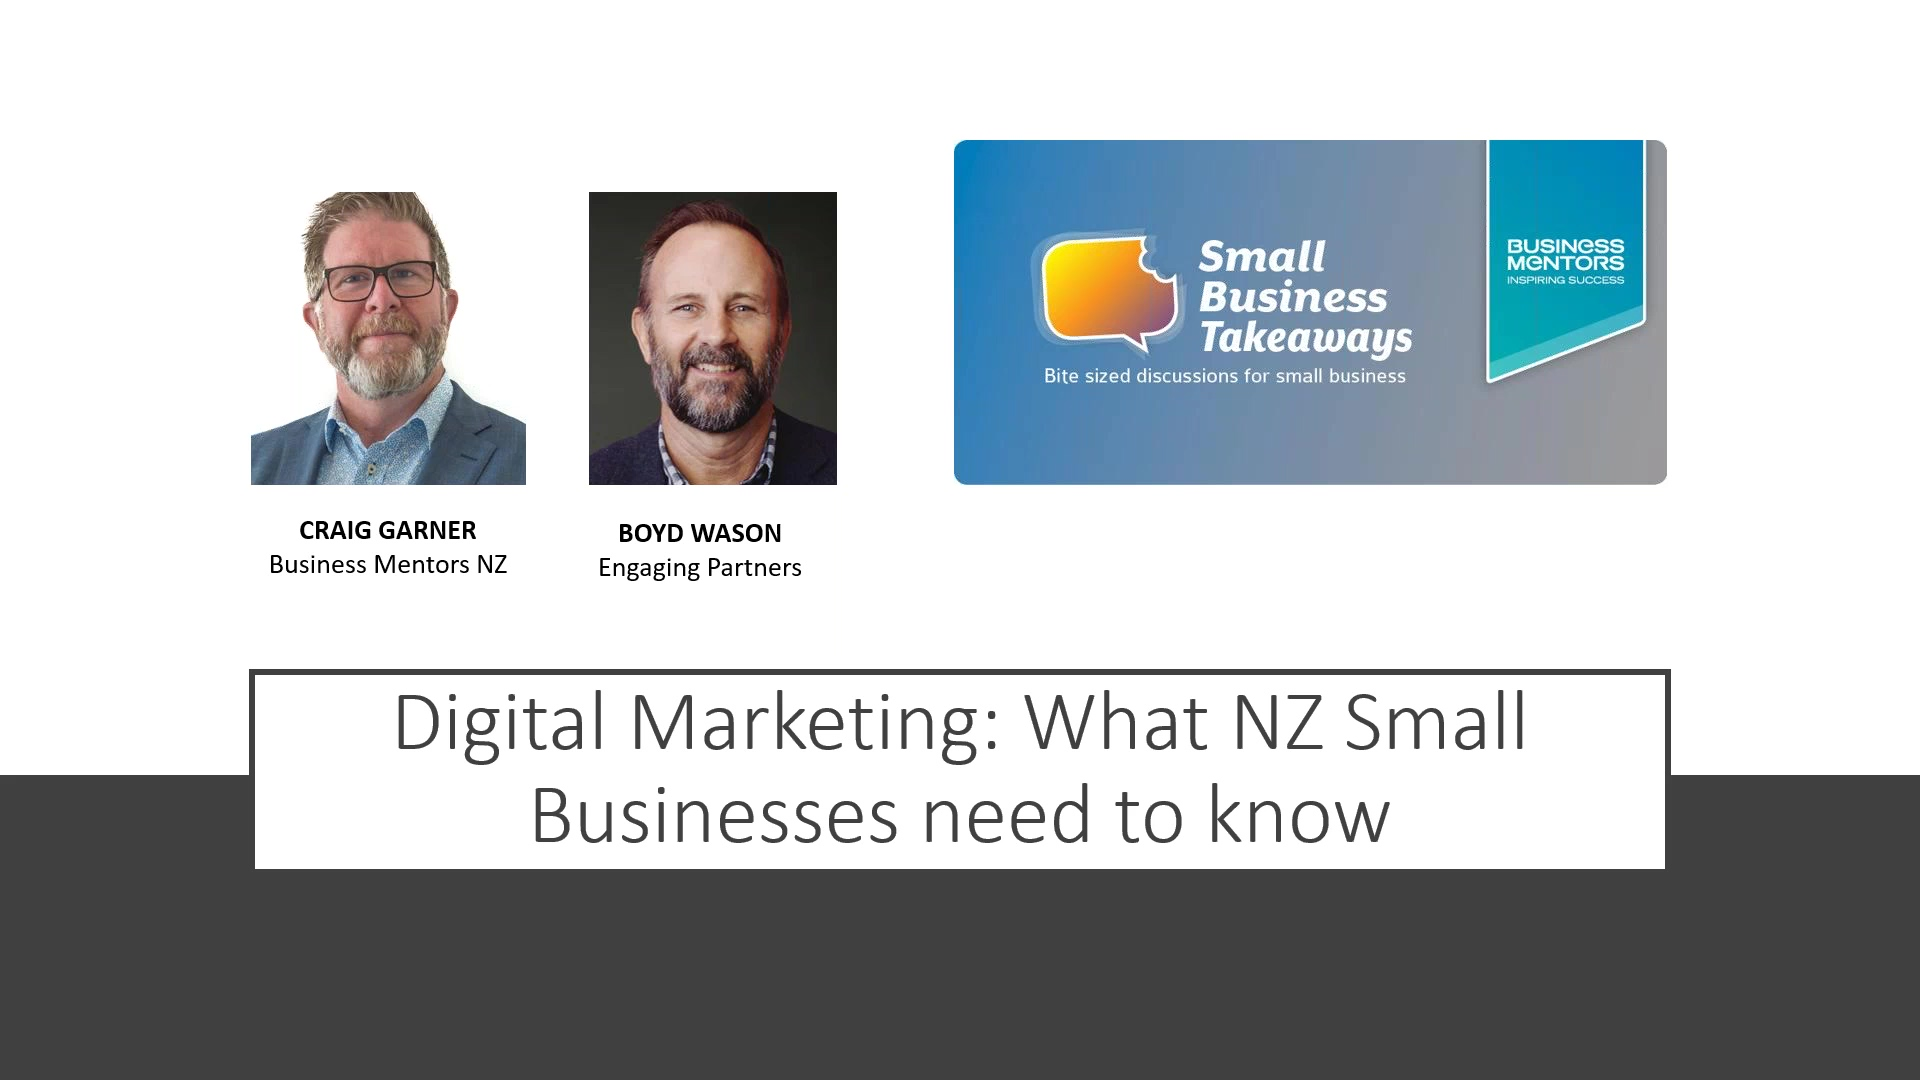 Business Mentors NZ Small Business Takeaways_ Digital Marketing – What NZ Small Business Must Know